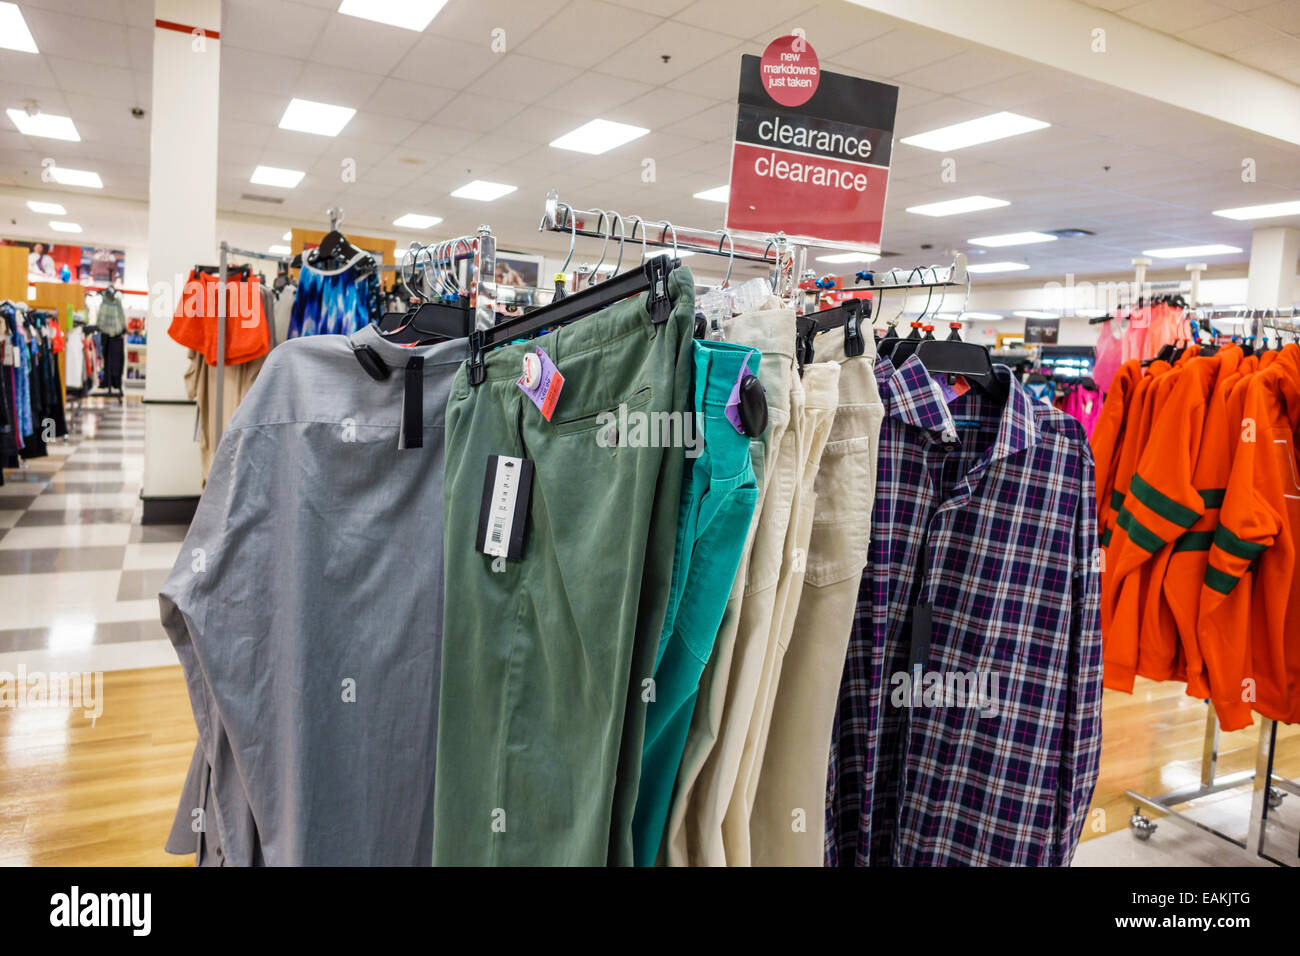 4c3b05a6722 Miami Hialeah Florida T.J. Maxx discount department store inside shopping  clearance sale men s clothing